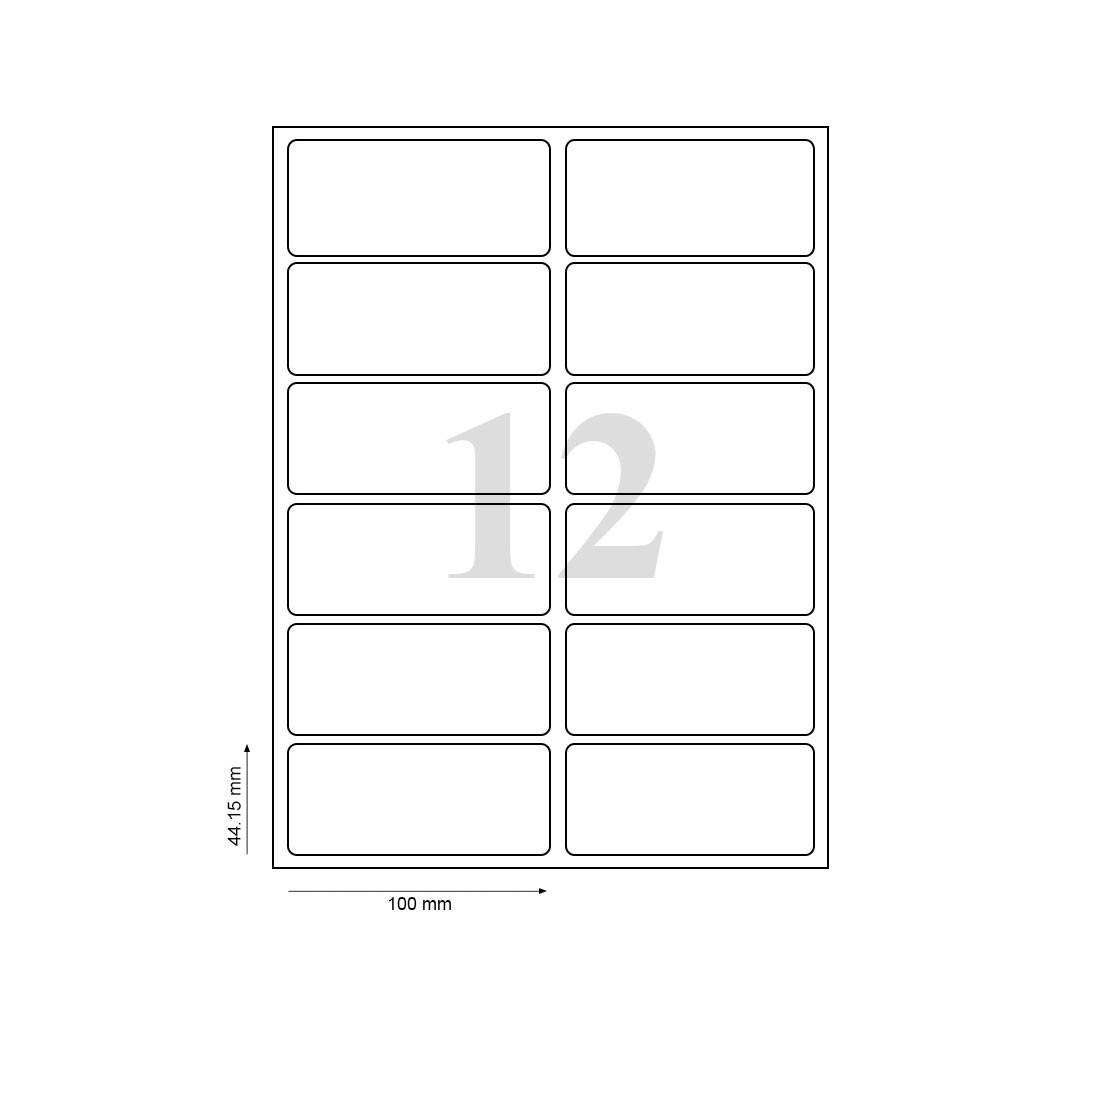 Oddy Label Sheets St 12 A4100 Pack Of 100 Sheets 12 Label Sheet Penpaperoffice